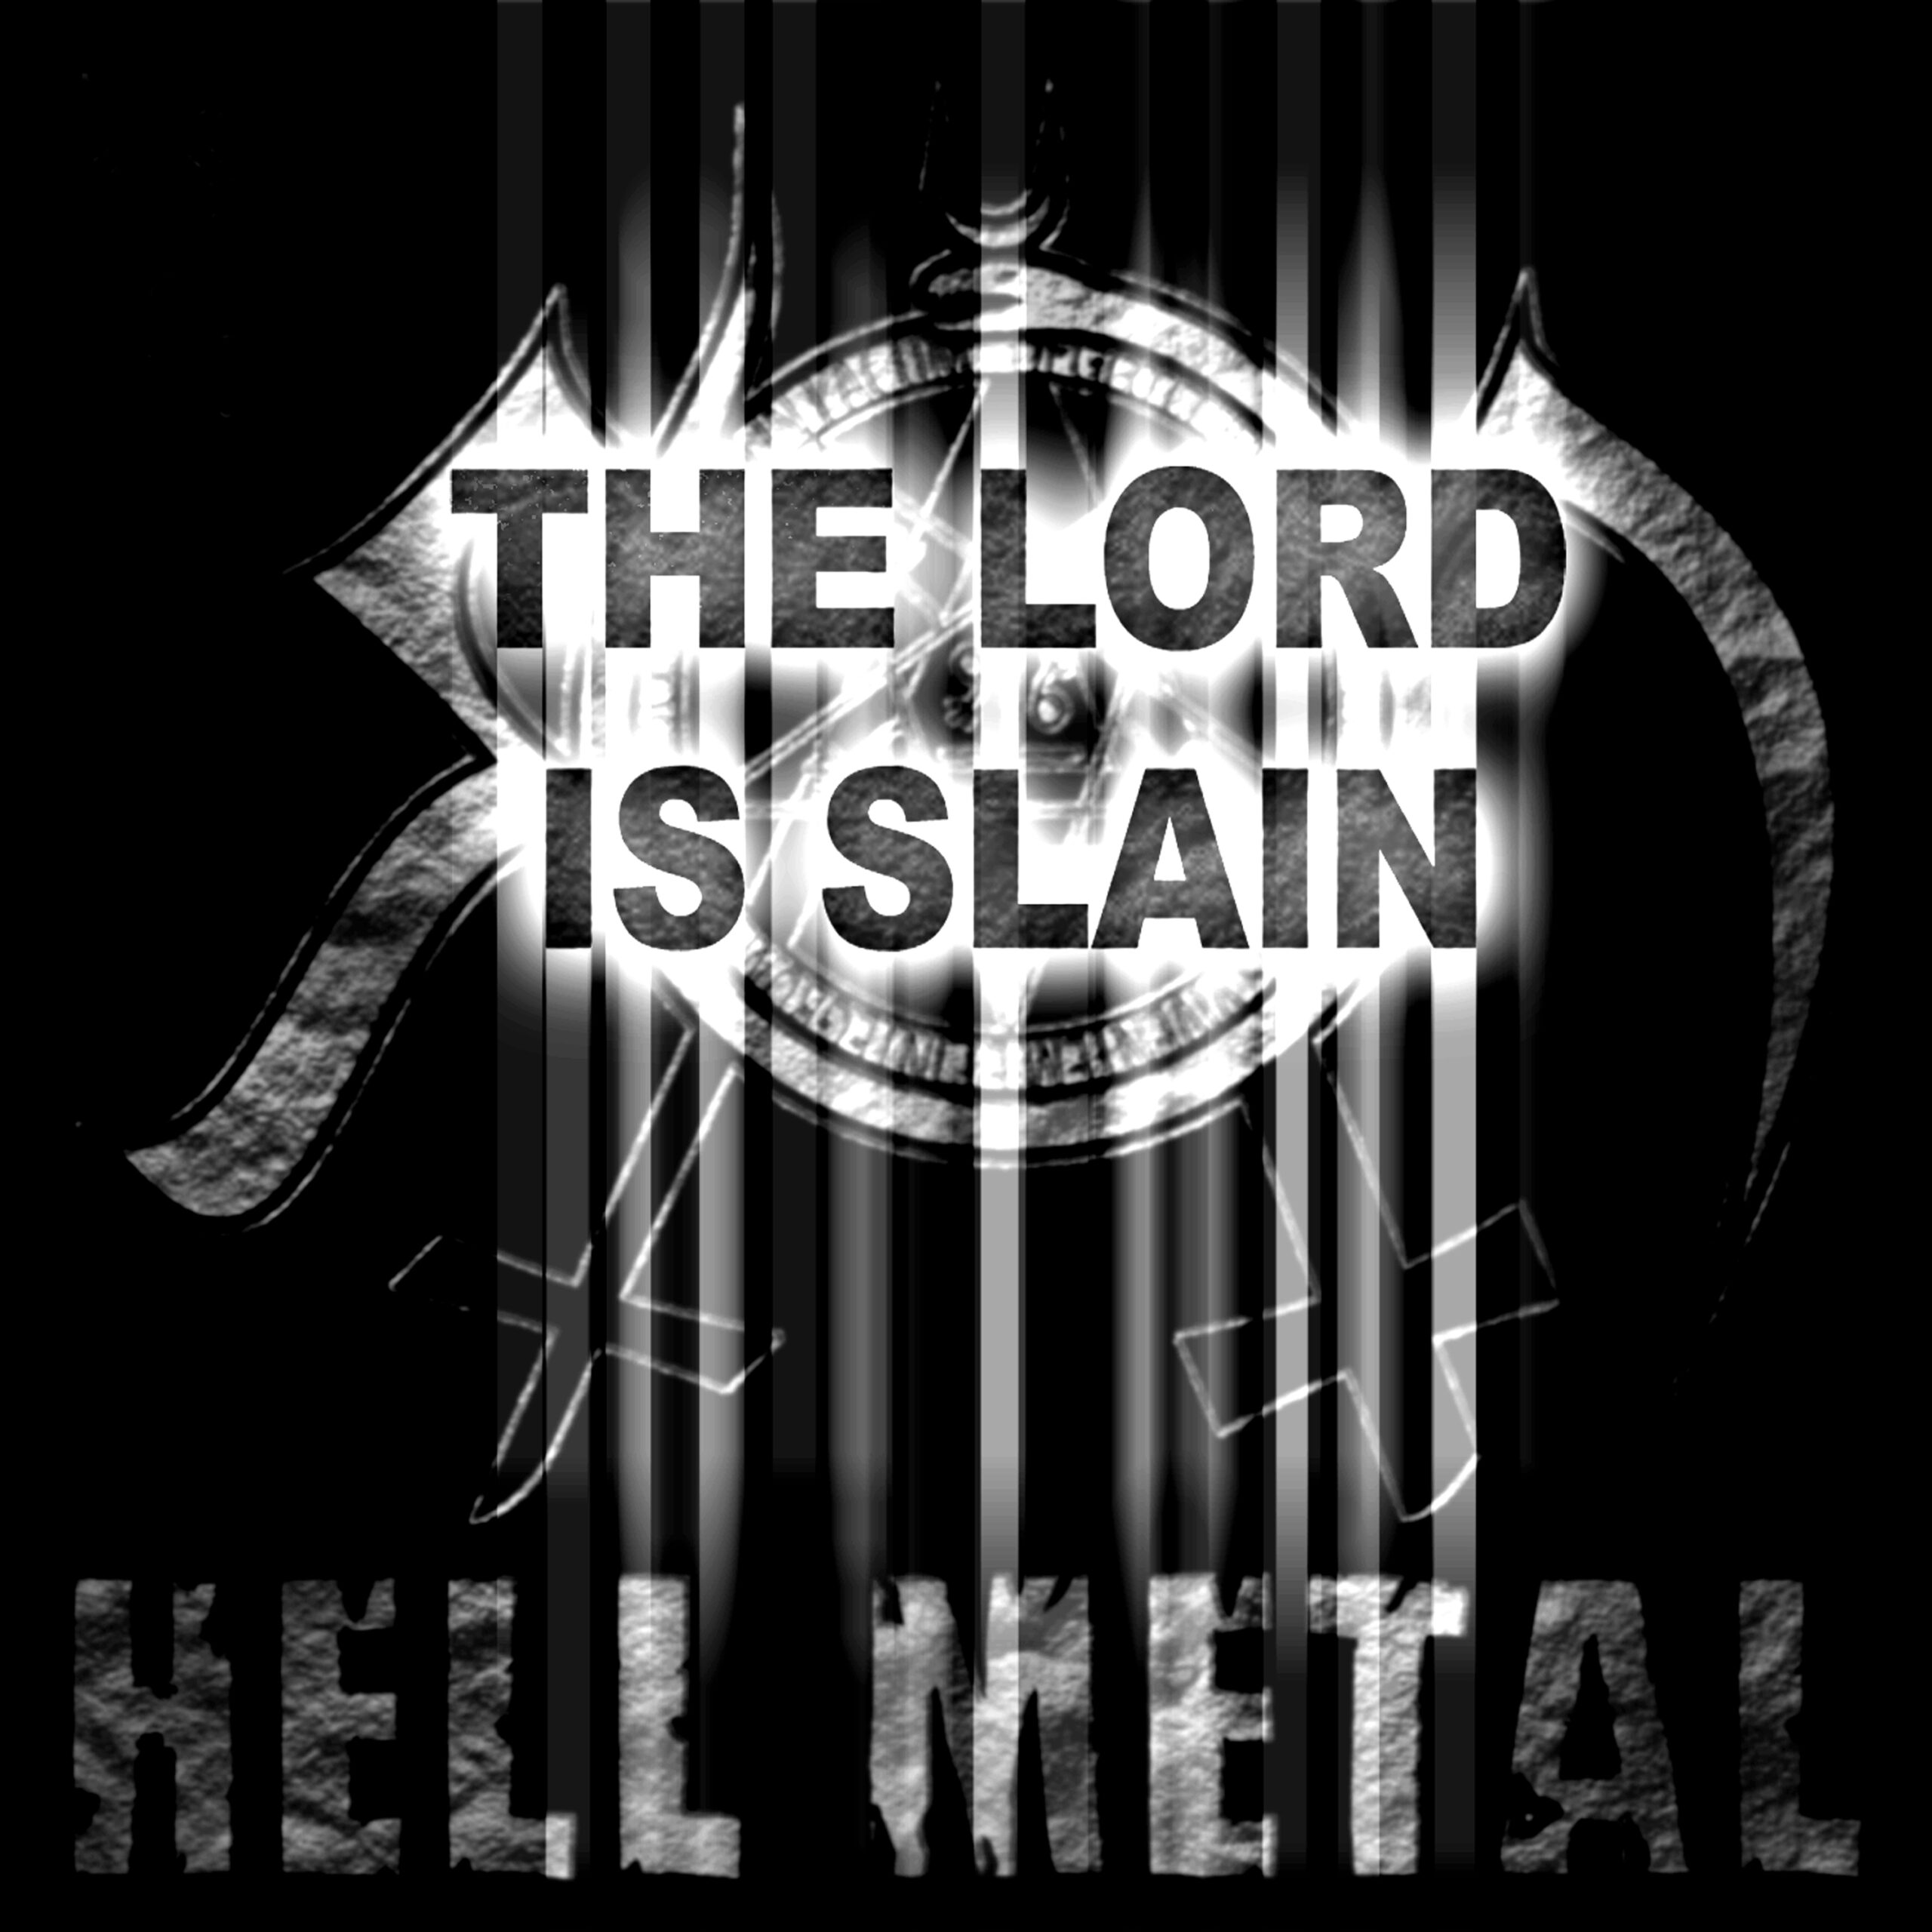 Coming up! The Lord is Slain